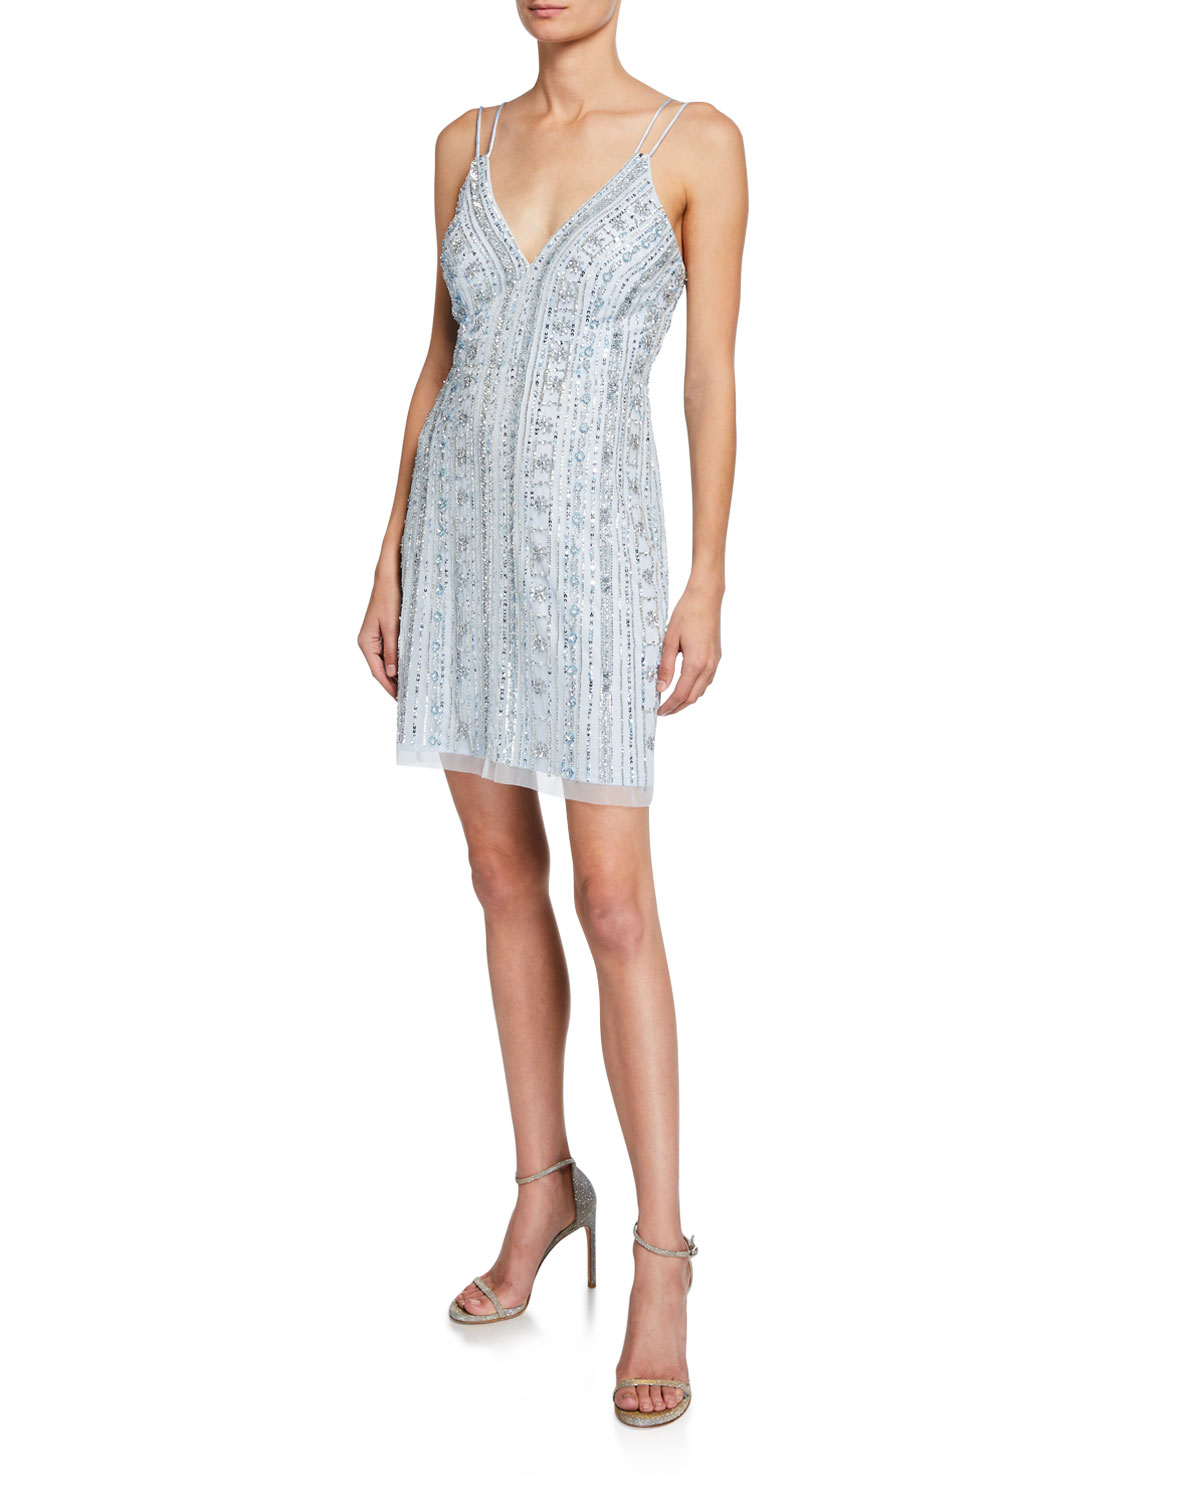 4a4ed5a9 Beaded One-Shoulder High-Low Midi Dress. Aidan Mattox beaded cocktail ...